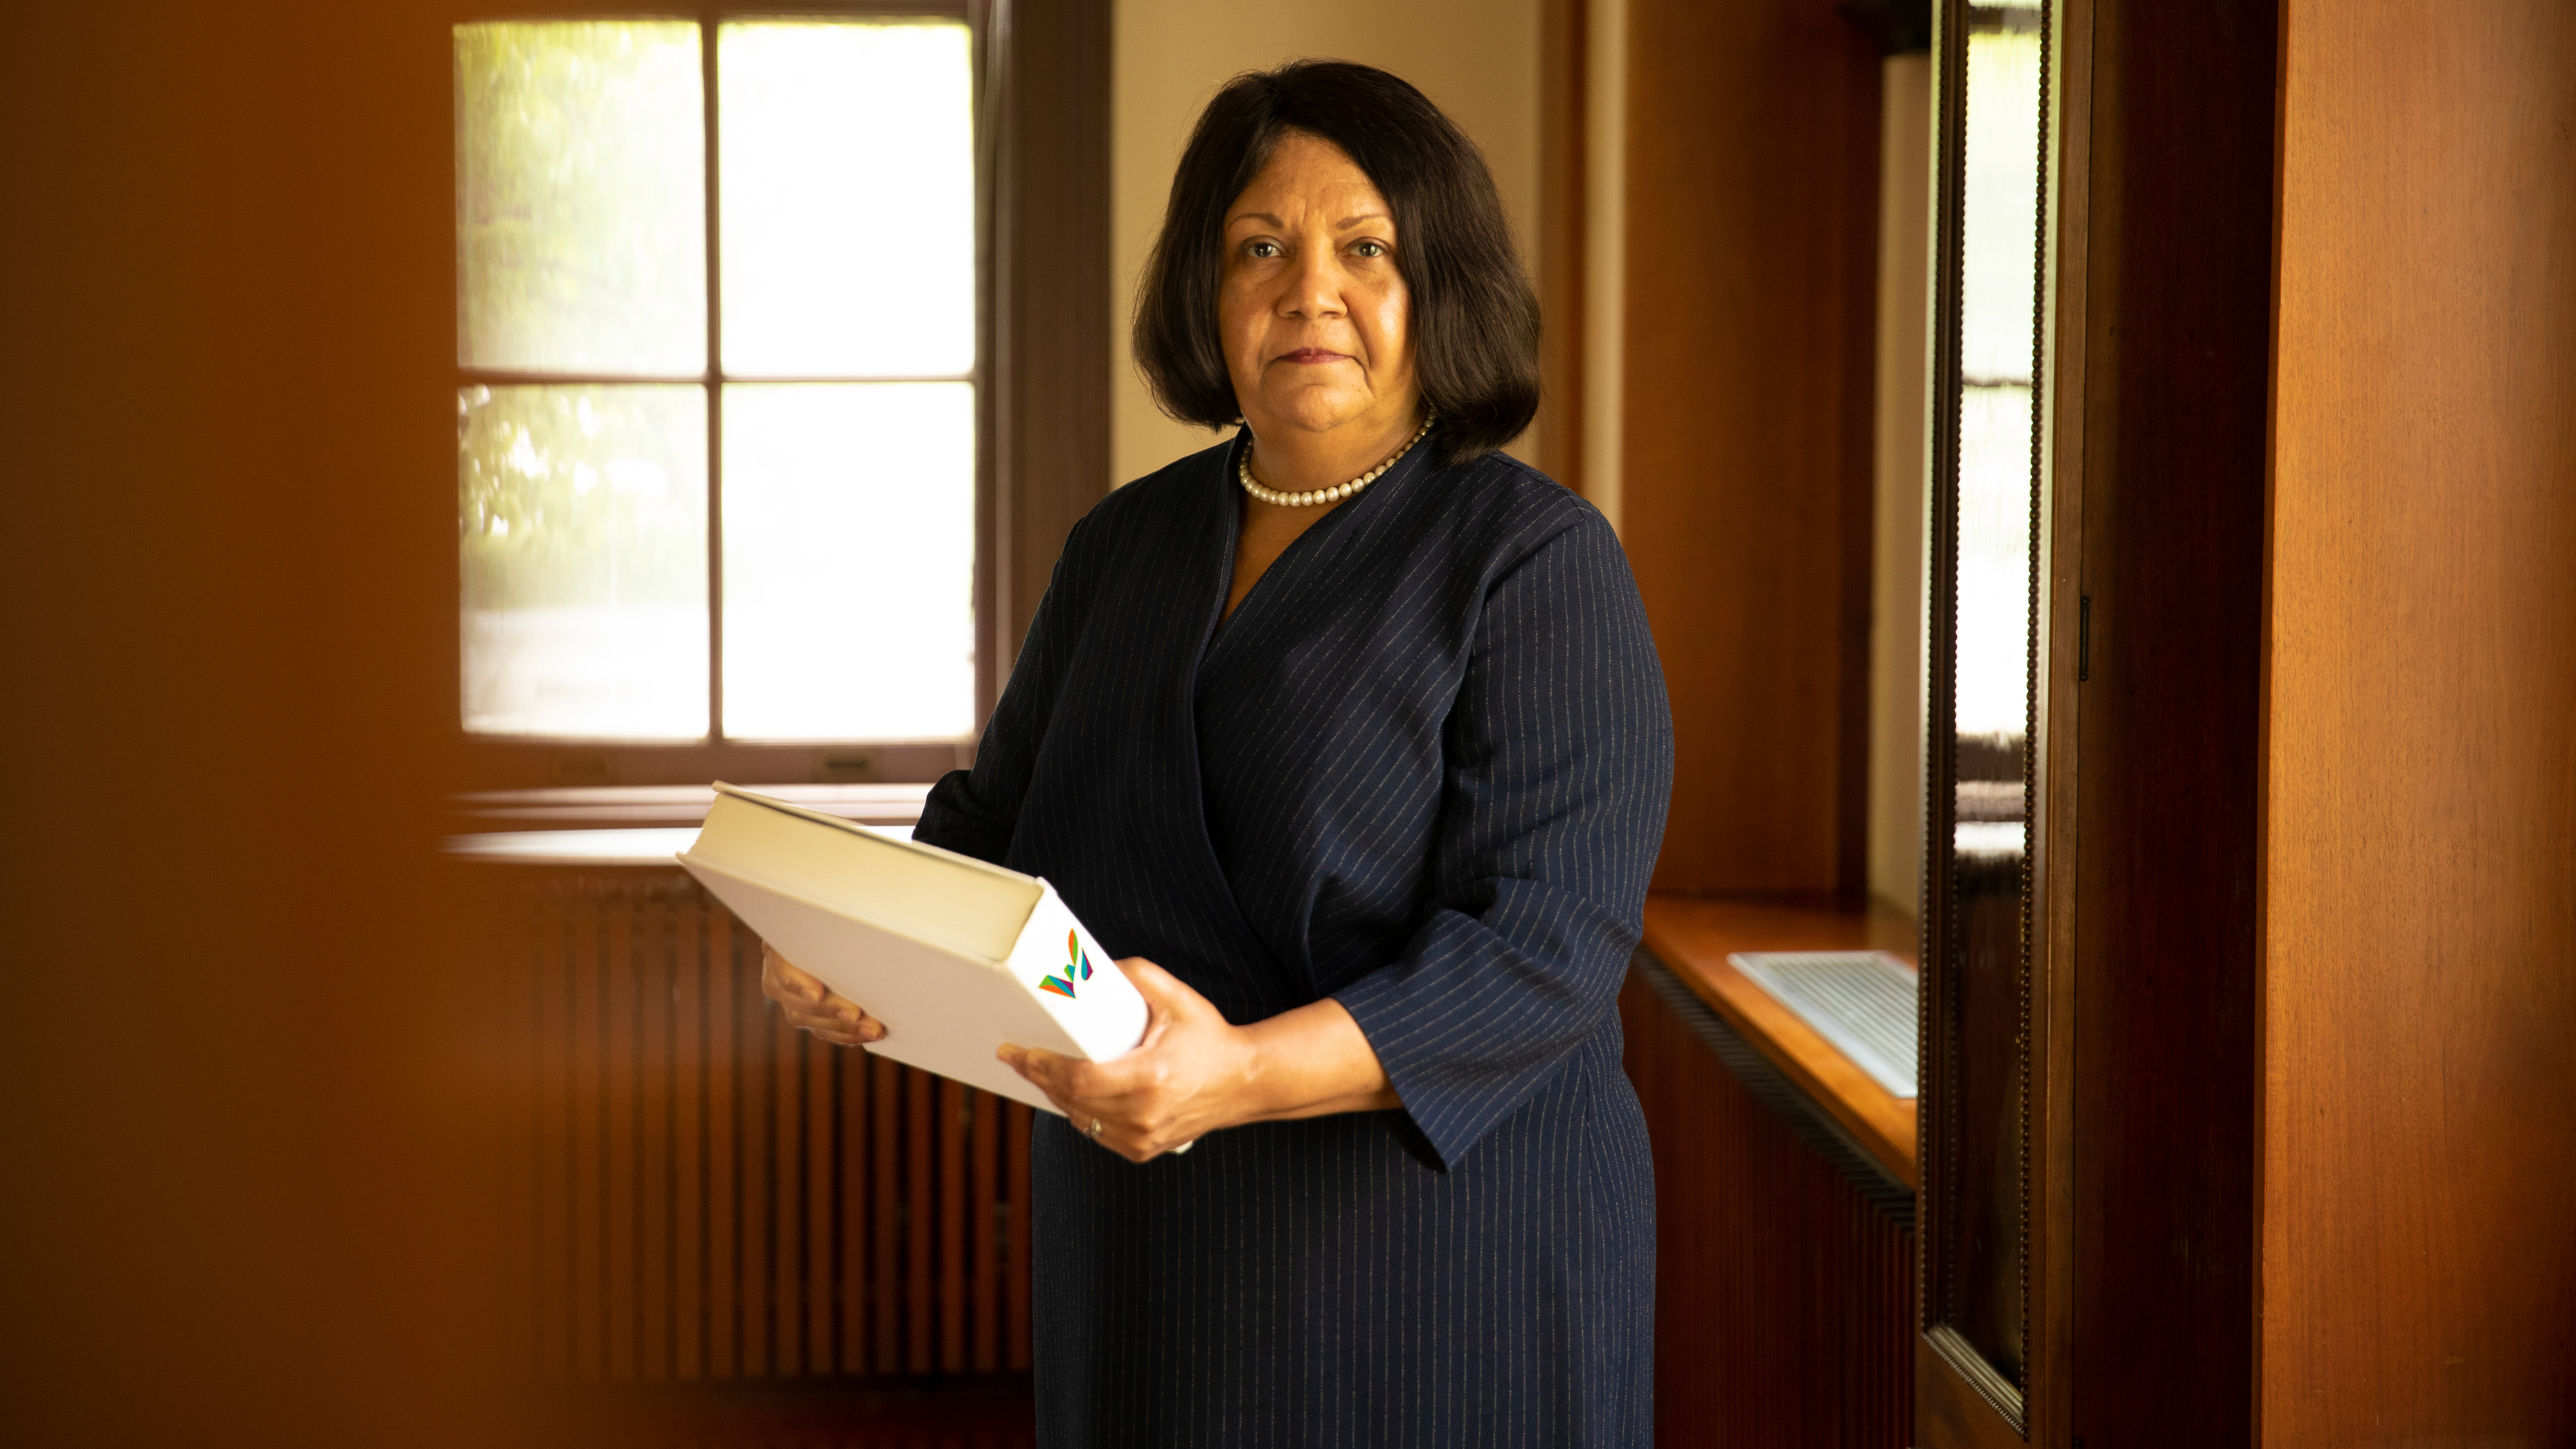 Superintendent of Waterbury Public Schools Verna Ruffin holding a large book with the Waterbury logo